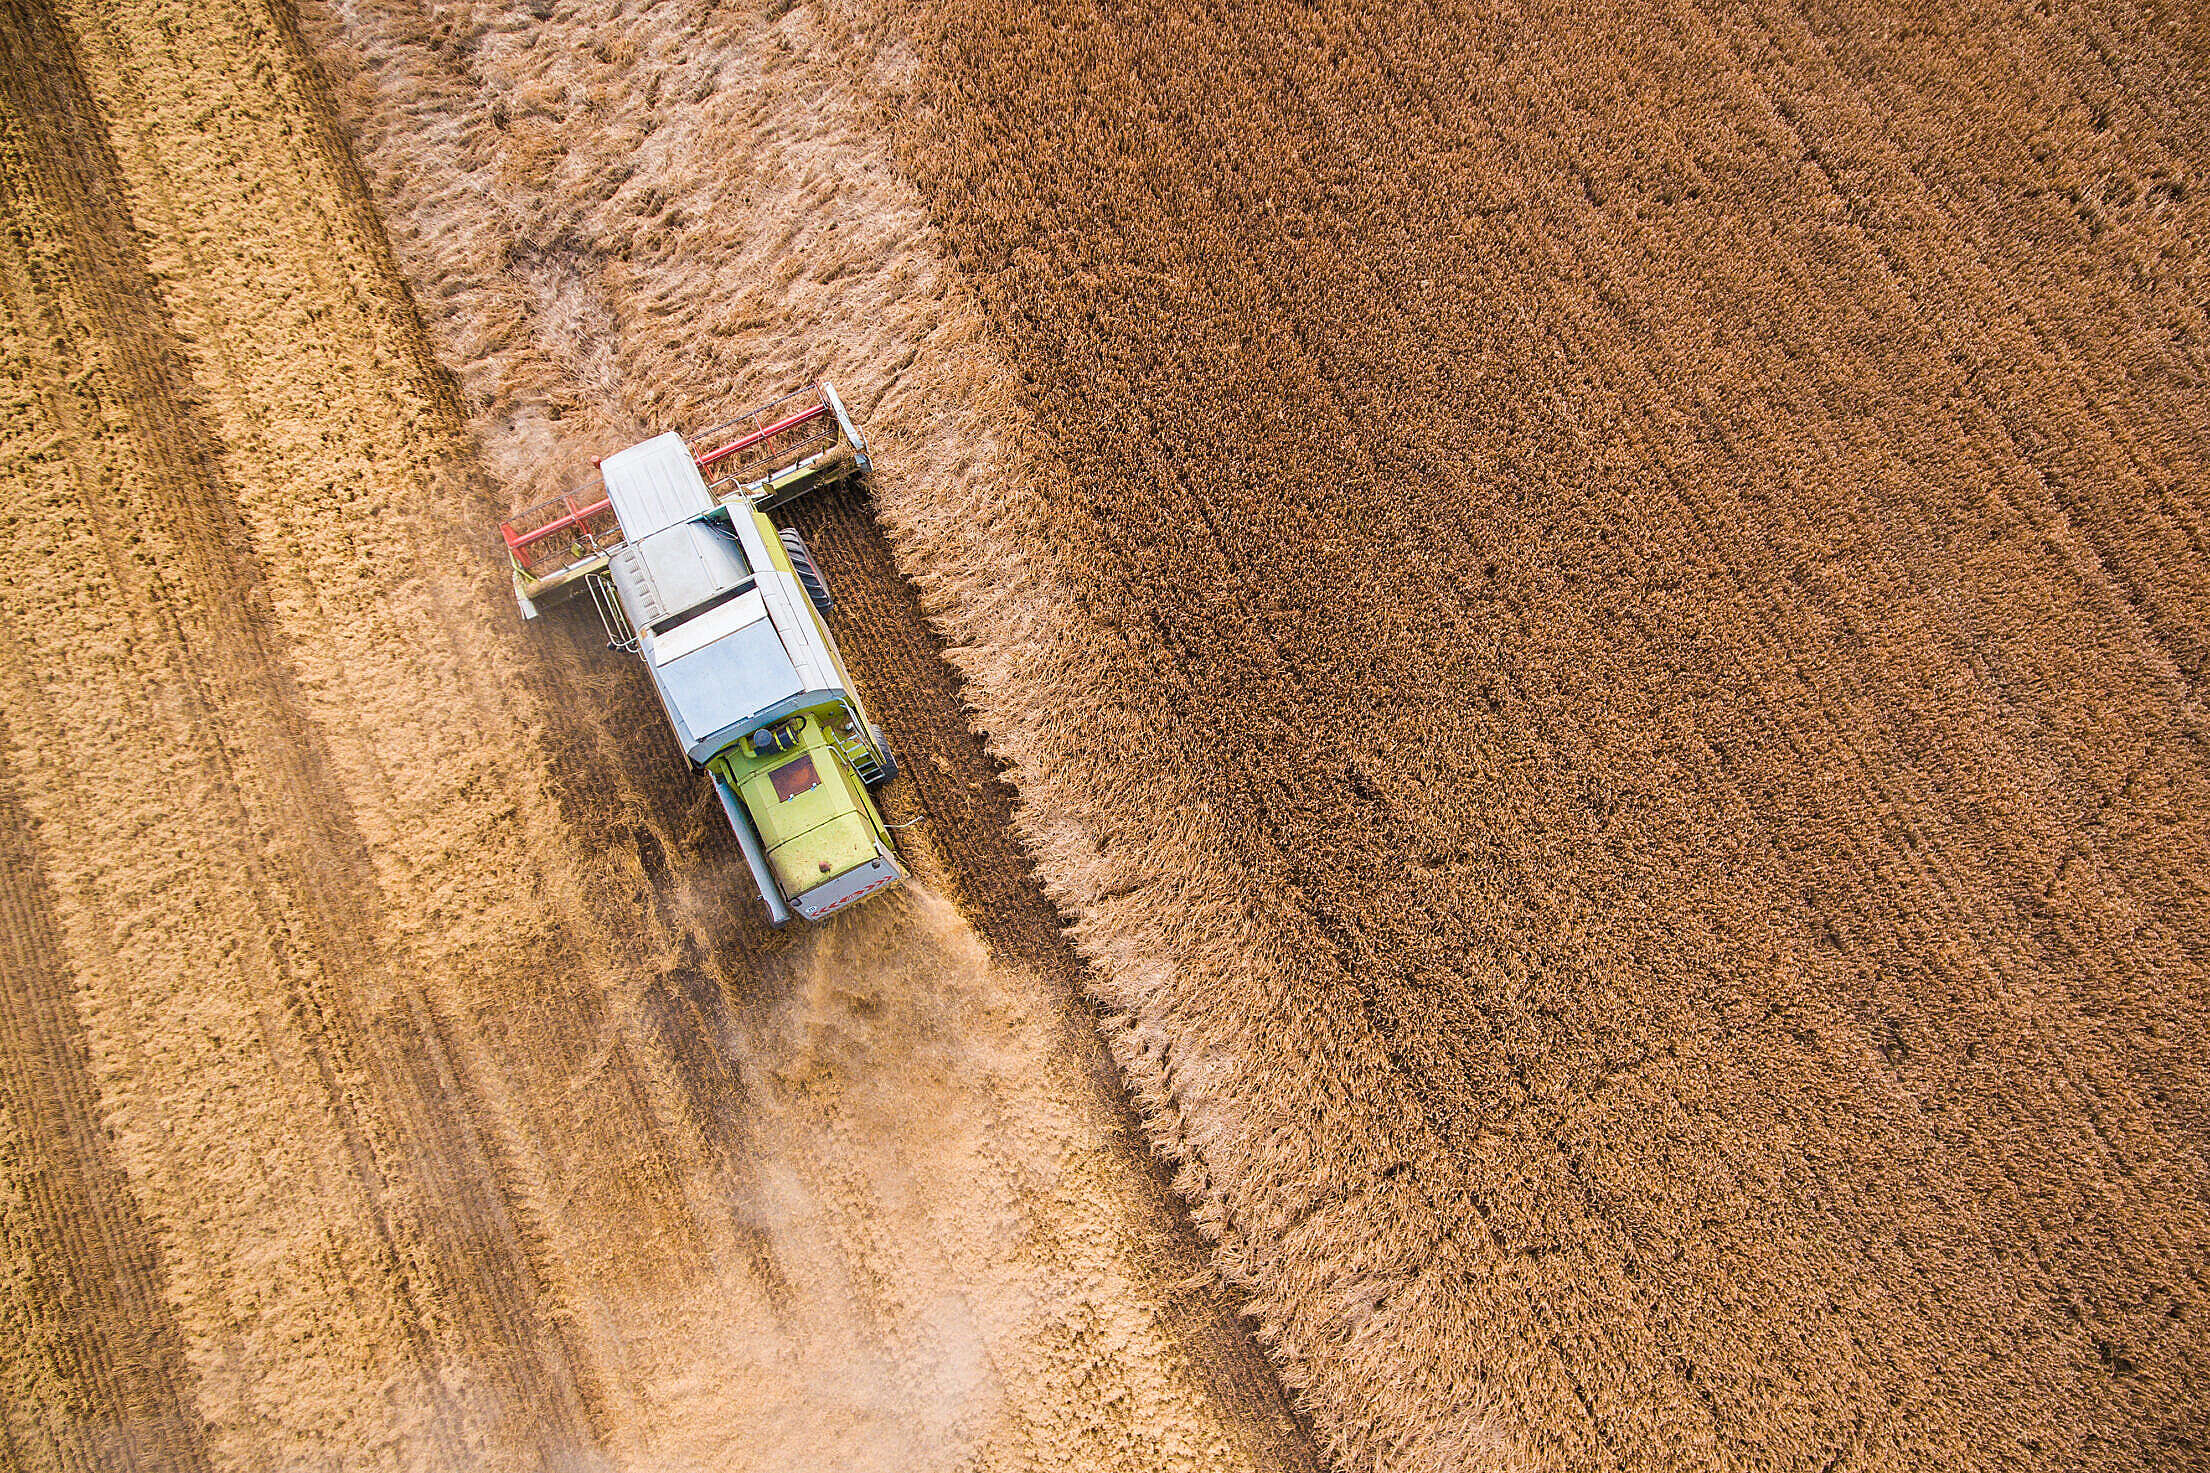 Combine Harvester at Work from Bird's Eye View #2 Free Stock Photo